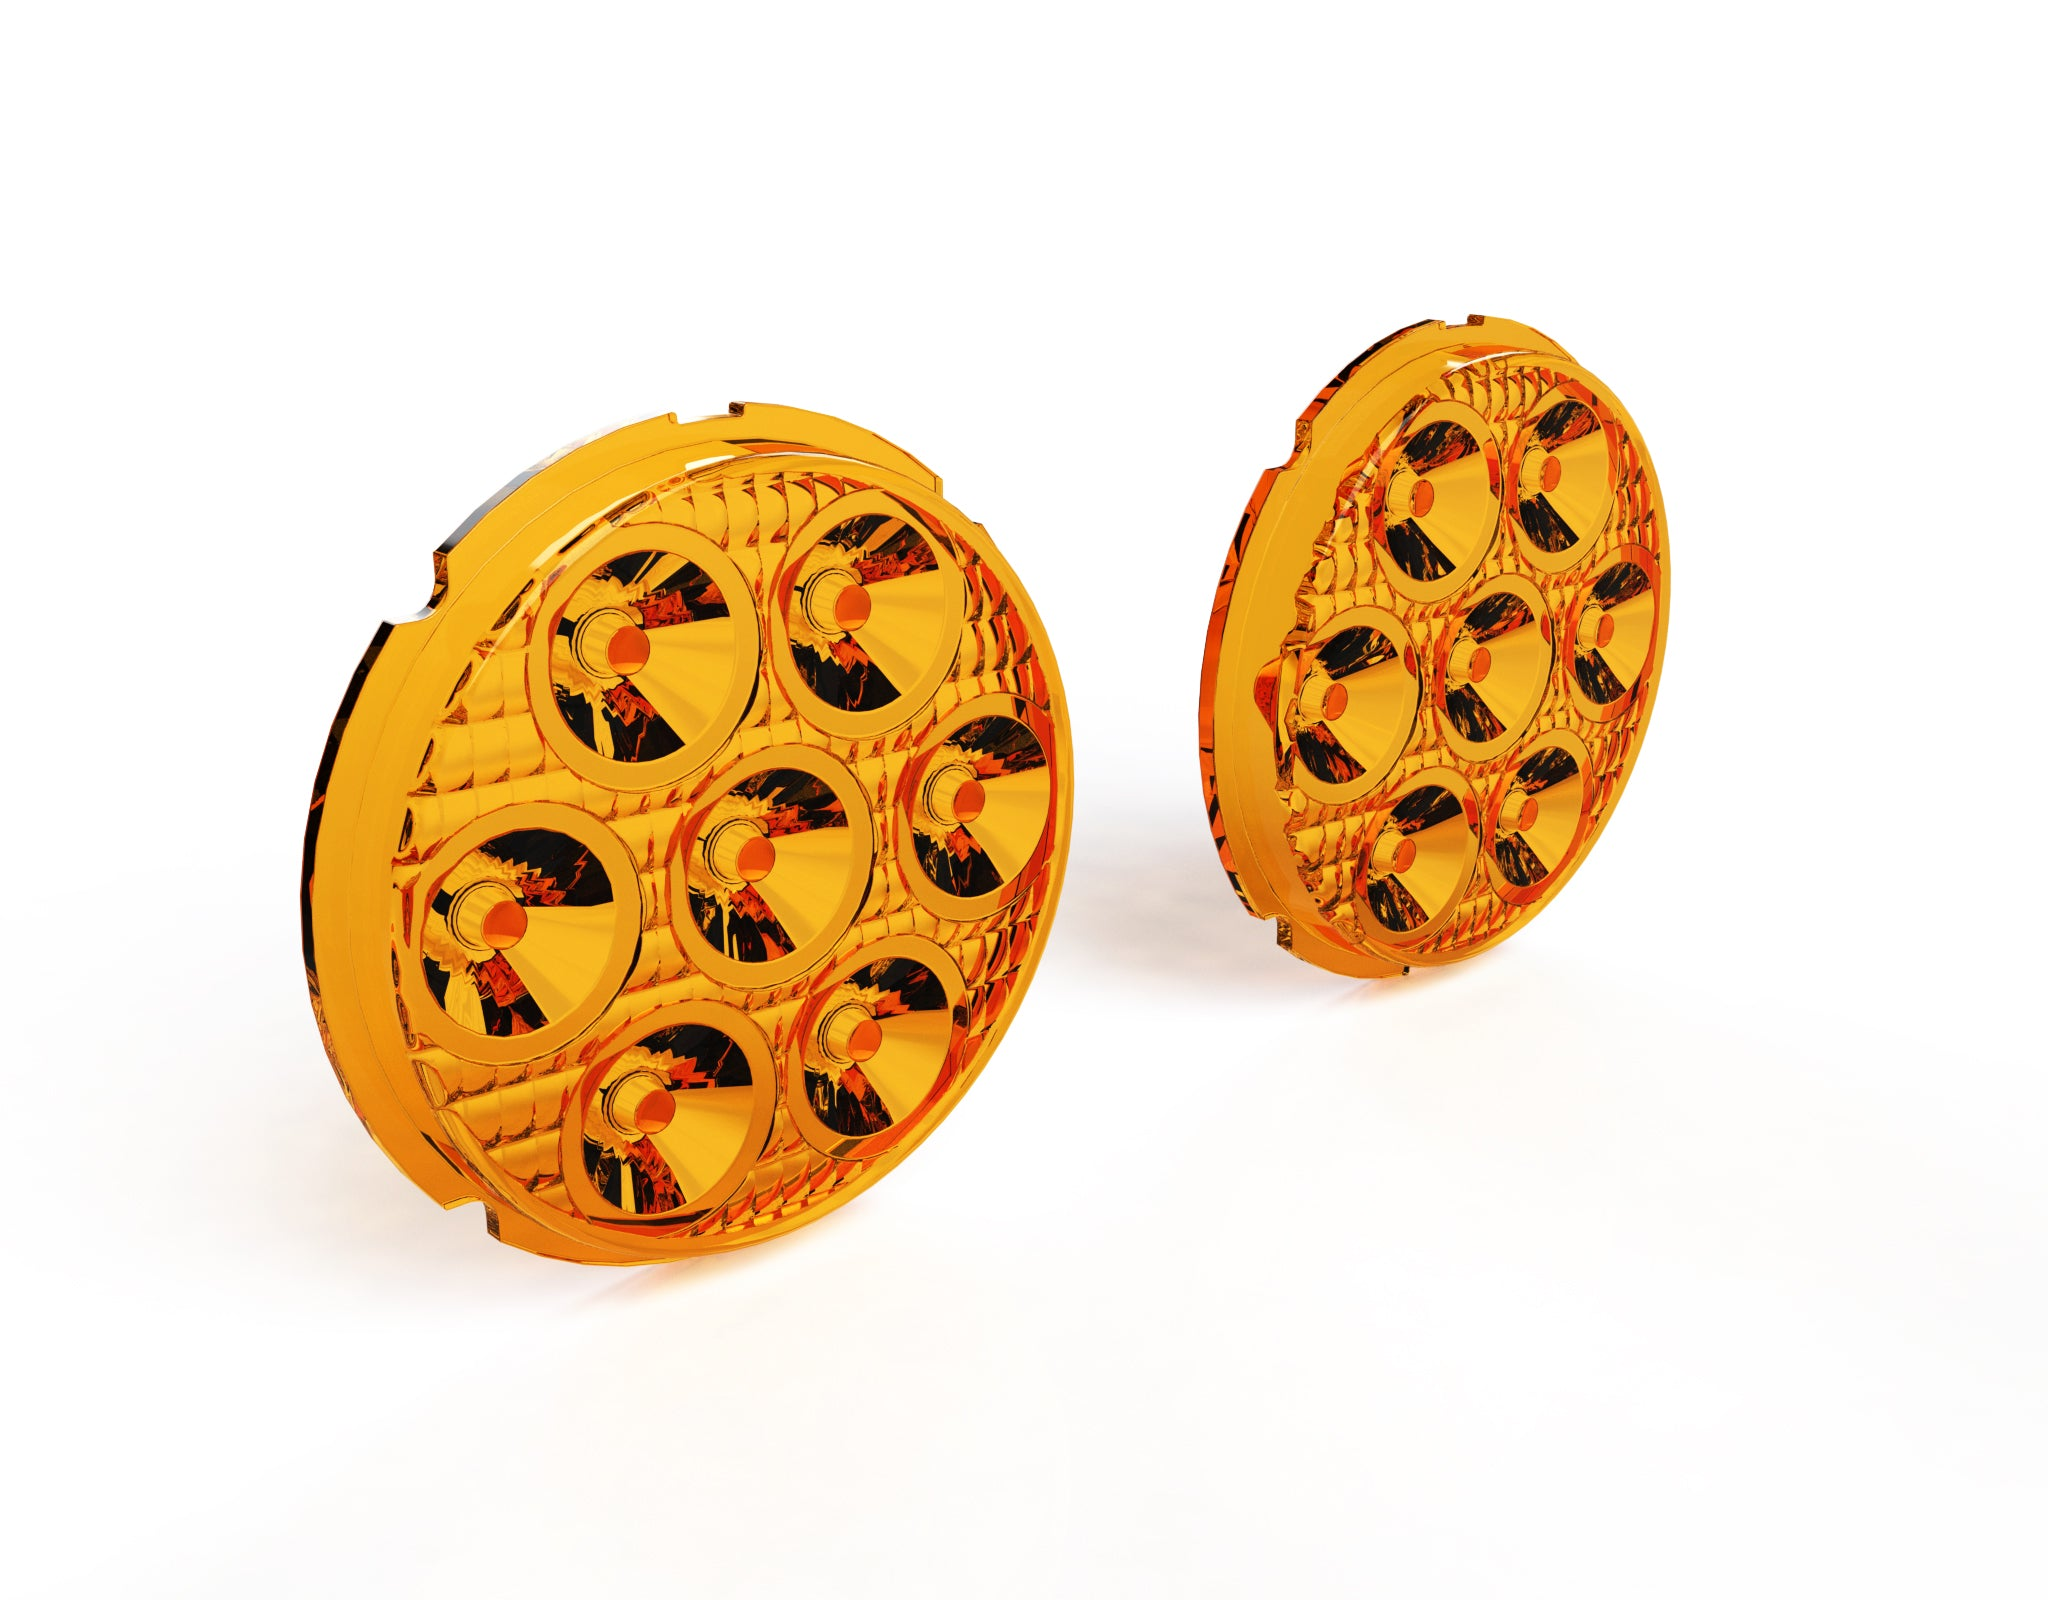 Image of Lens Kit for D7 LED Lights - Amber or Selective Yellow